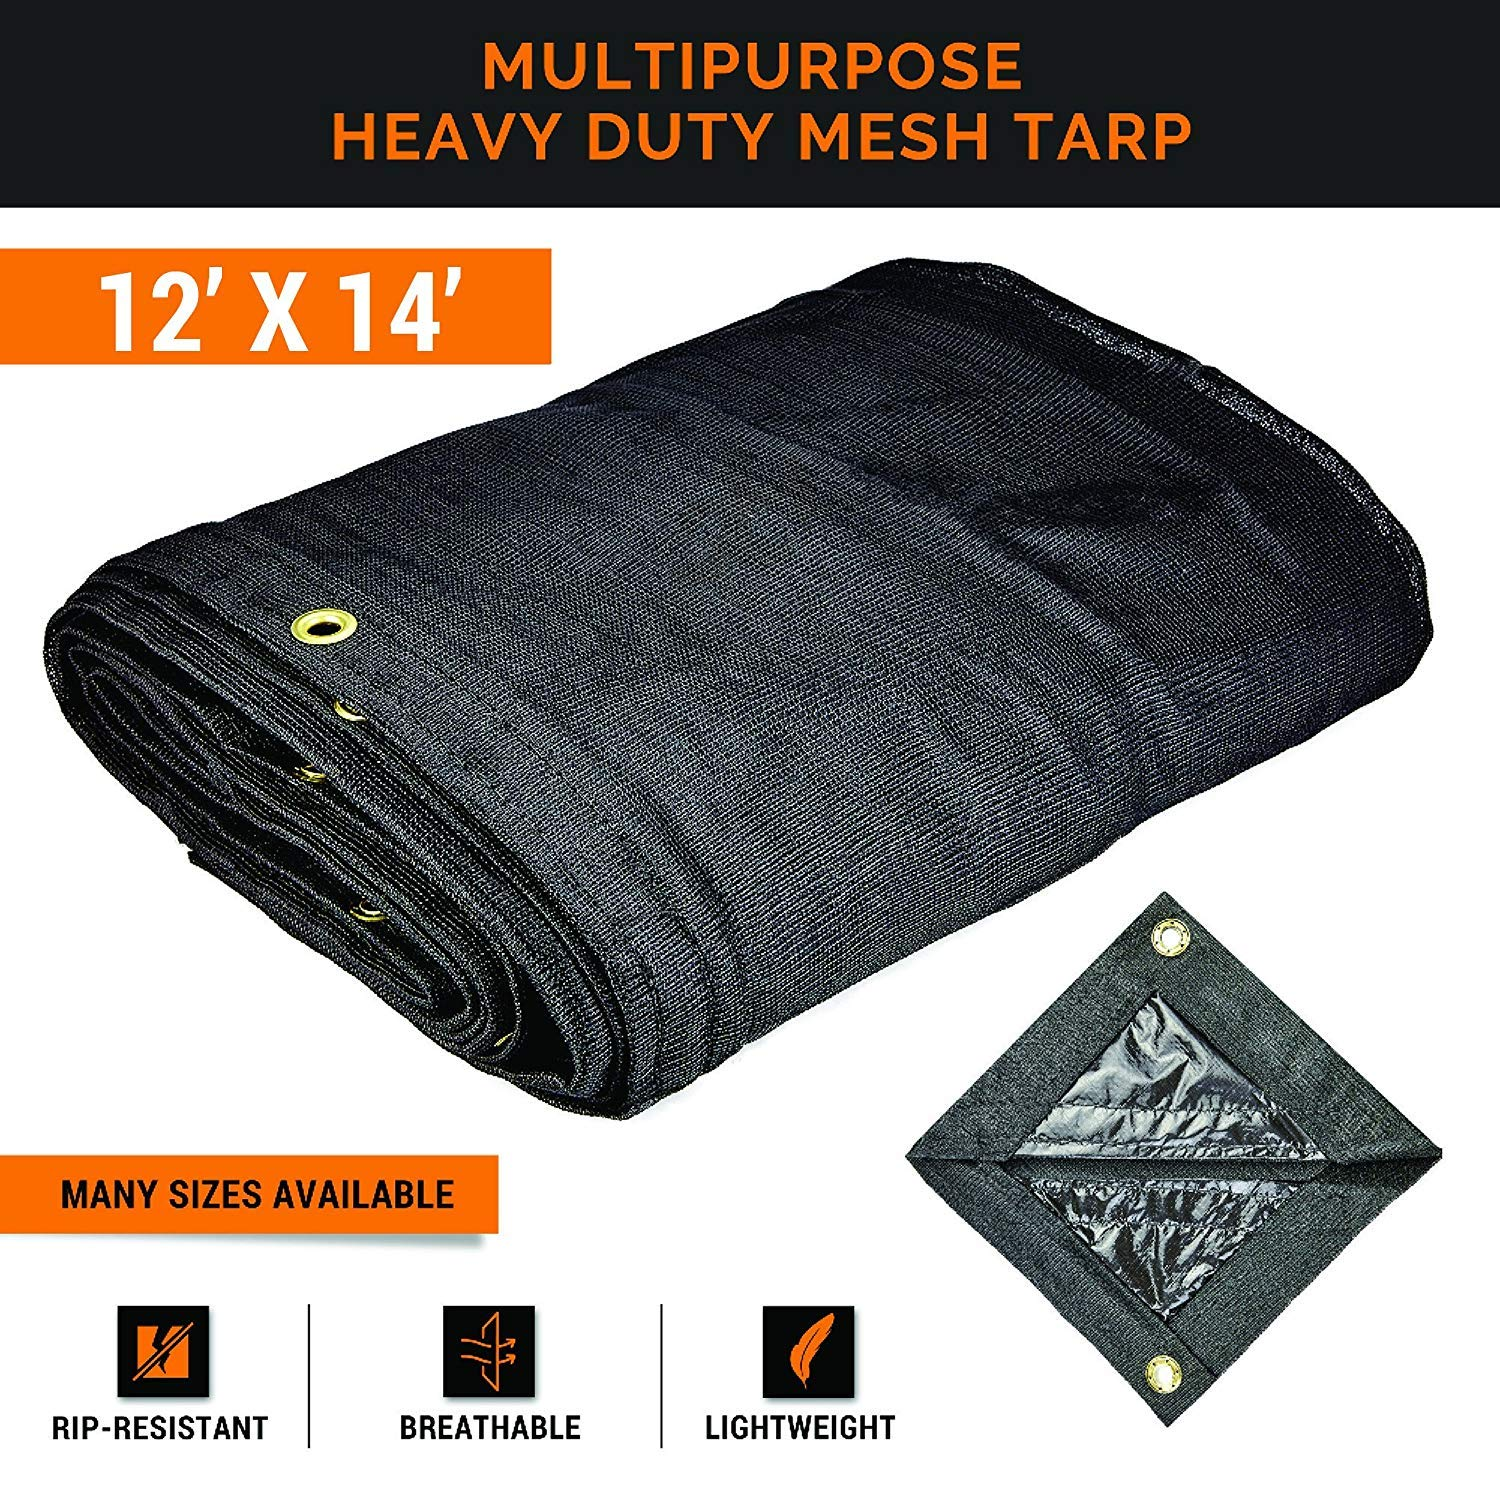 12/' x 20/' Multipurpose Black Protective Cover with Air Flow Shade Xpose Safety Heavy Duty Mesh Tarp Fences Canopies Dump Trucks Use for Tie Downs Tear Resistant